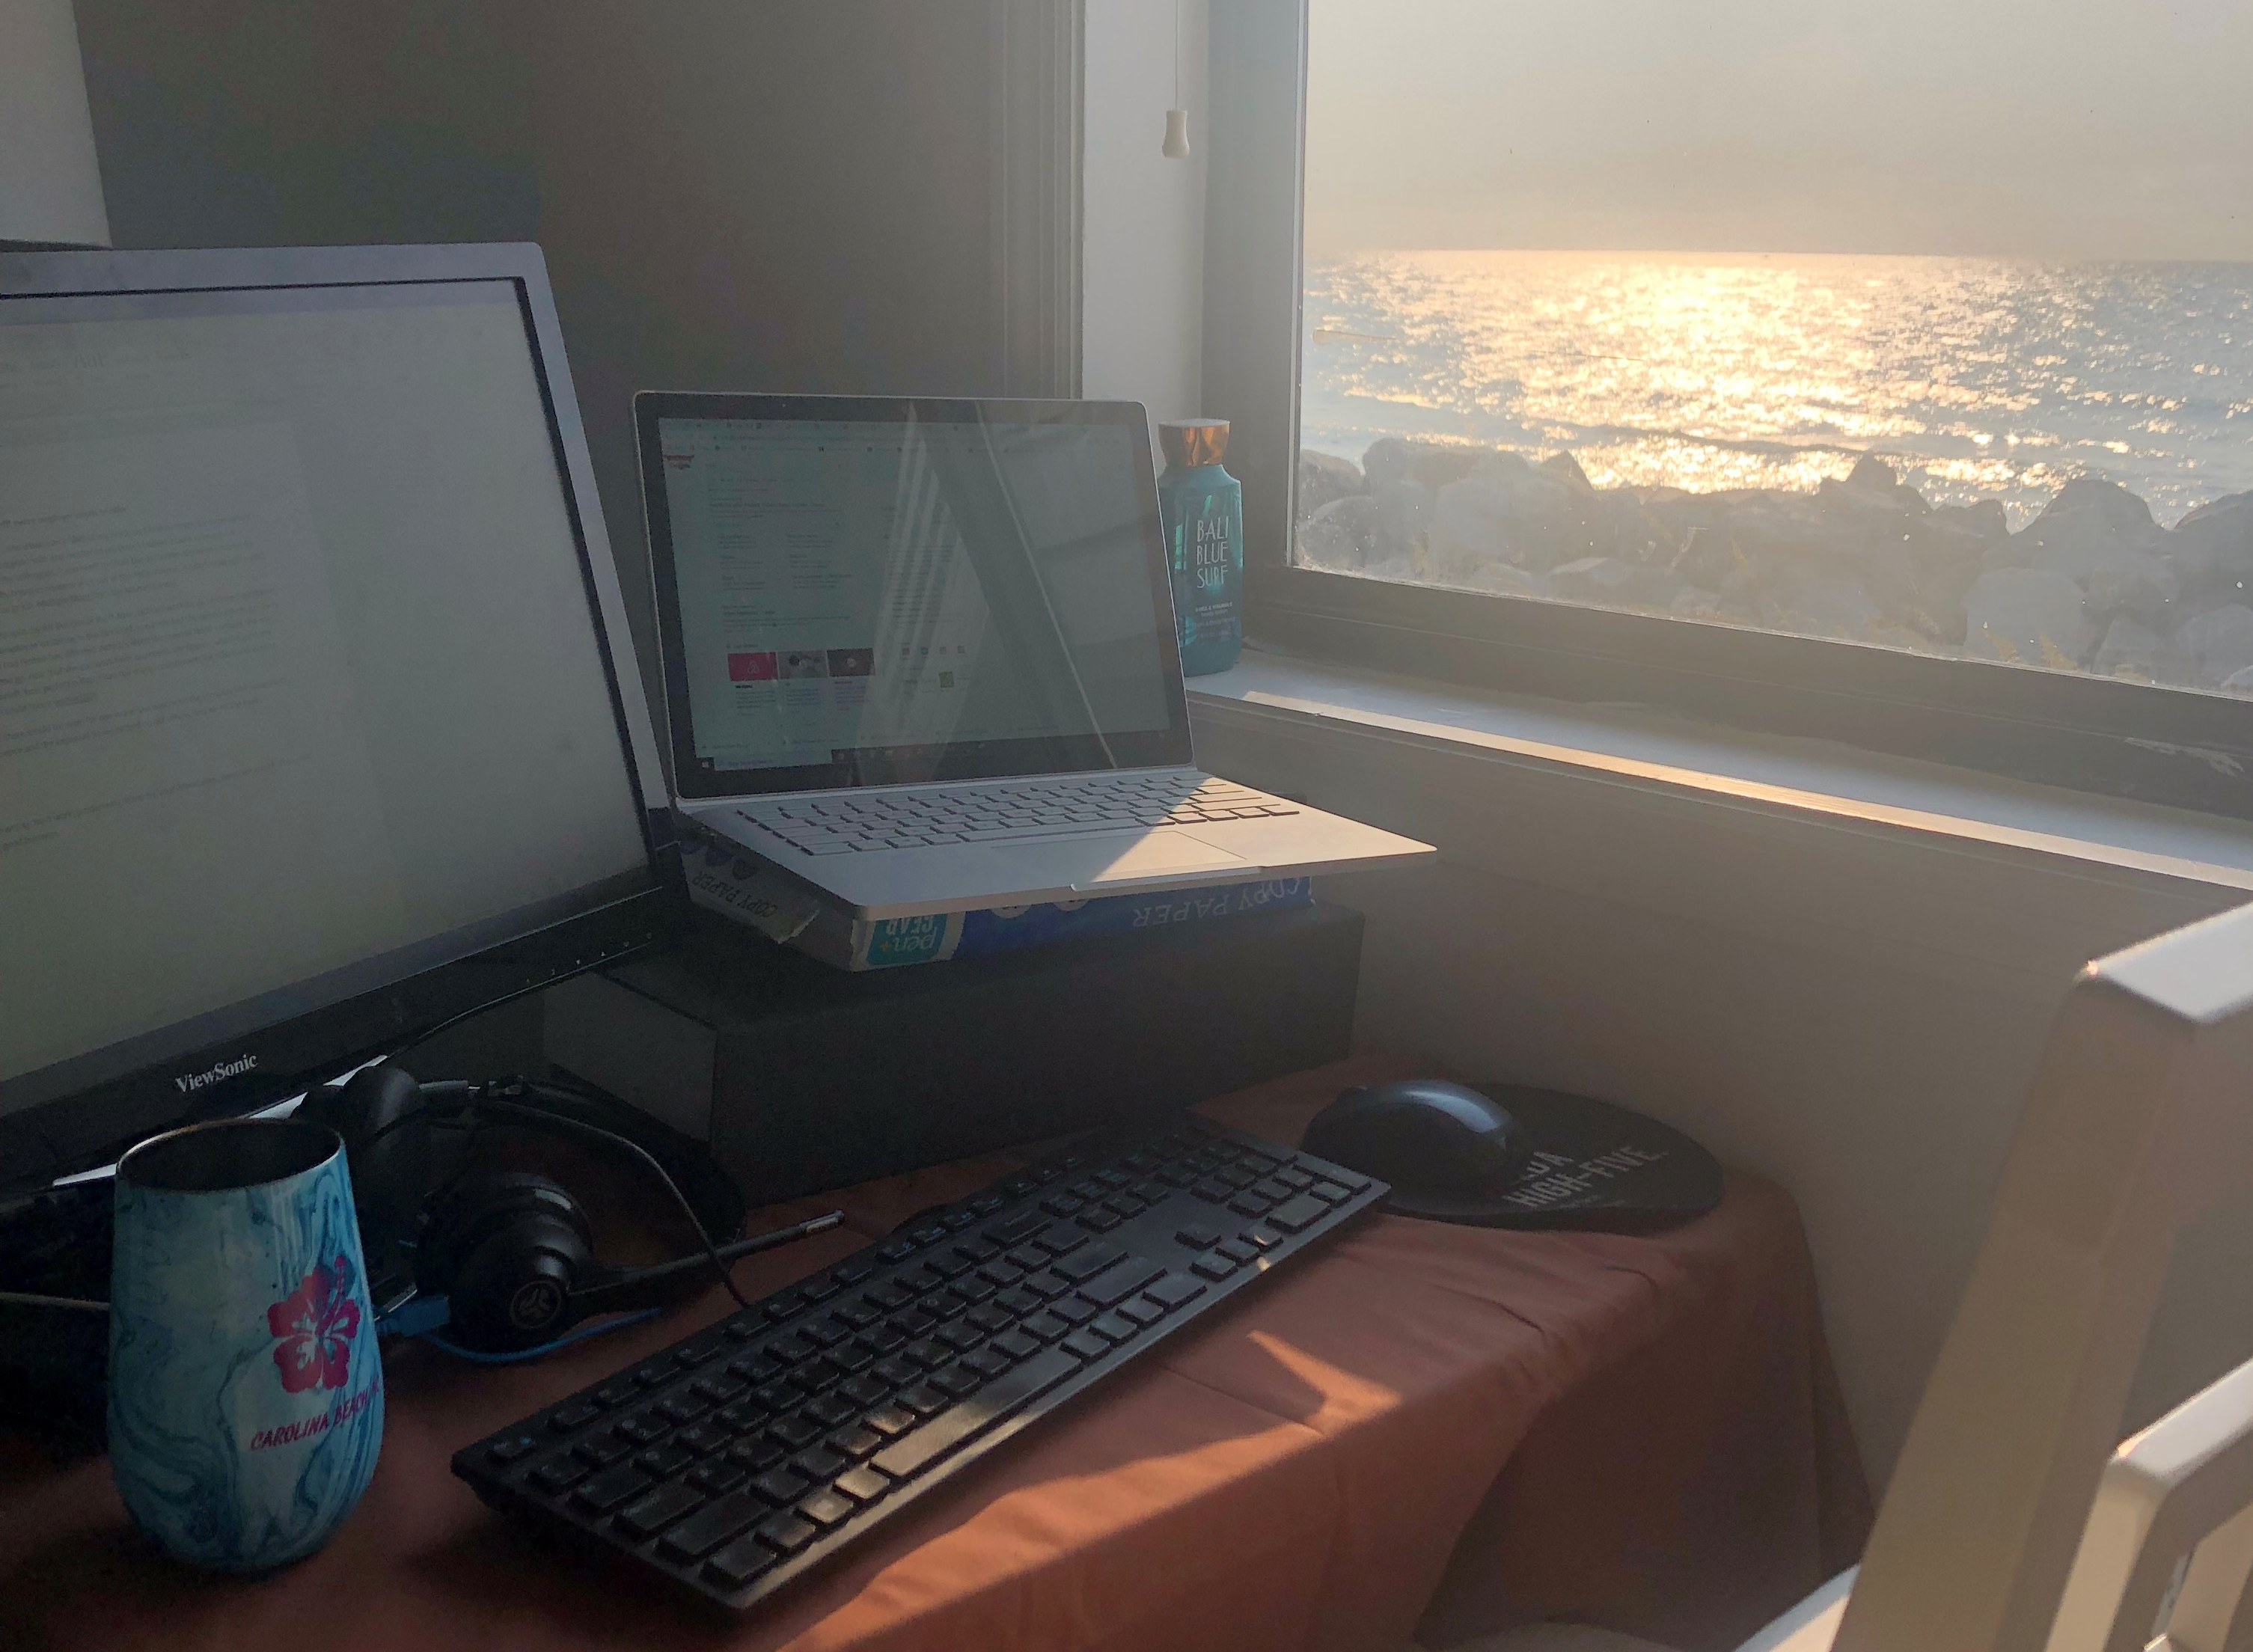 This image shows a computer on a desk with a window that has a view of the ocean.